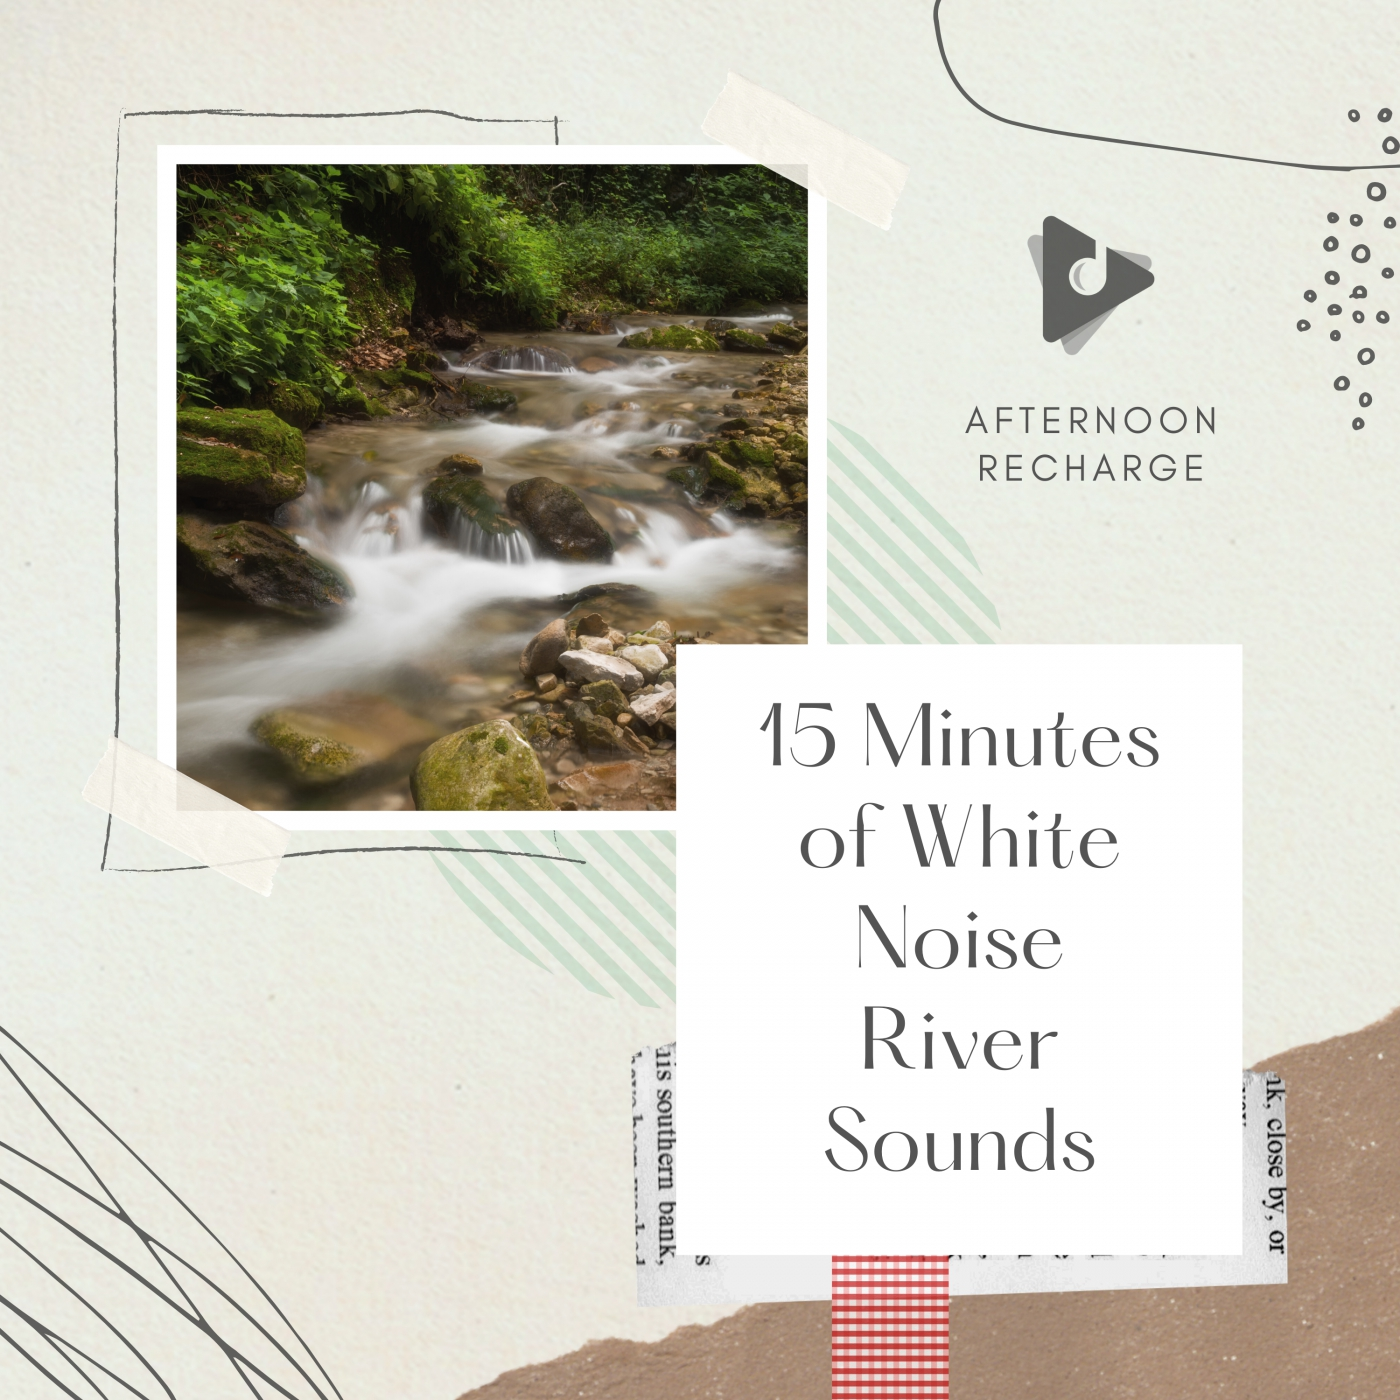 15 Minutes of White Noise River Sounds